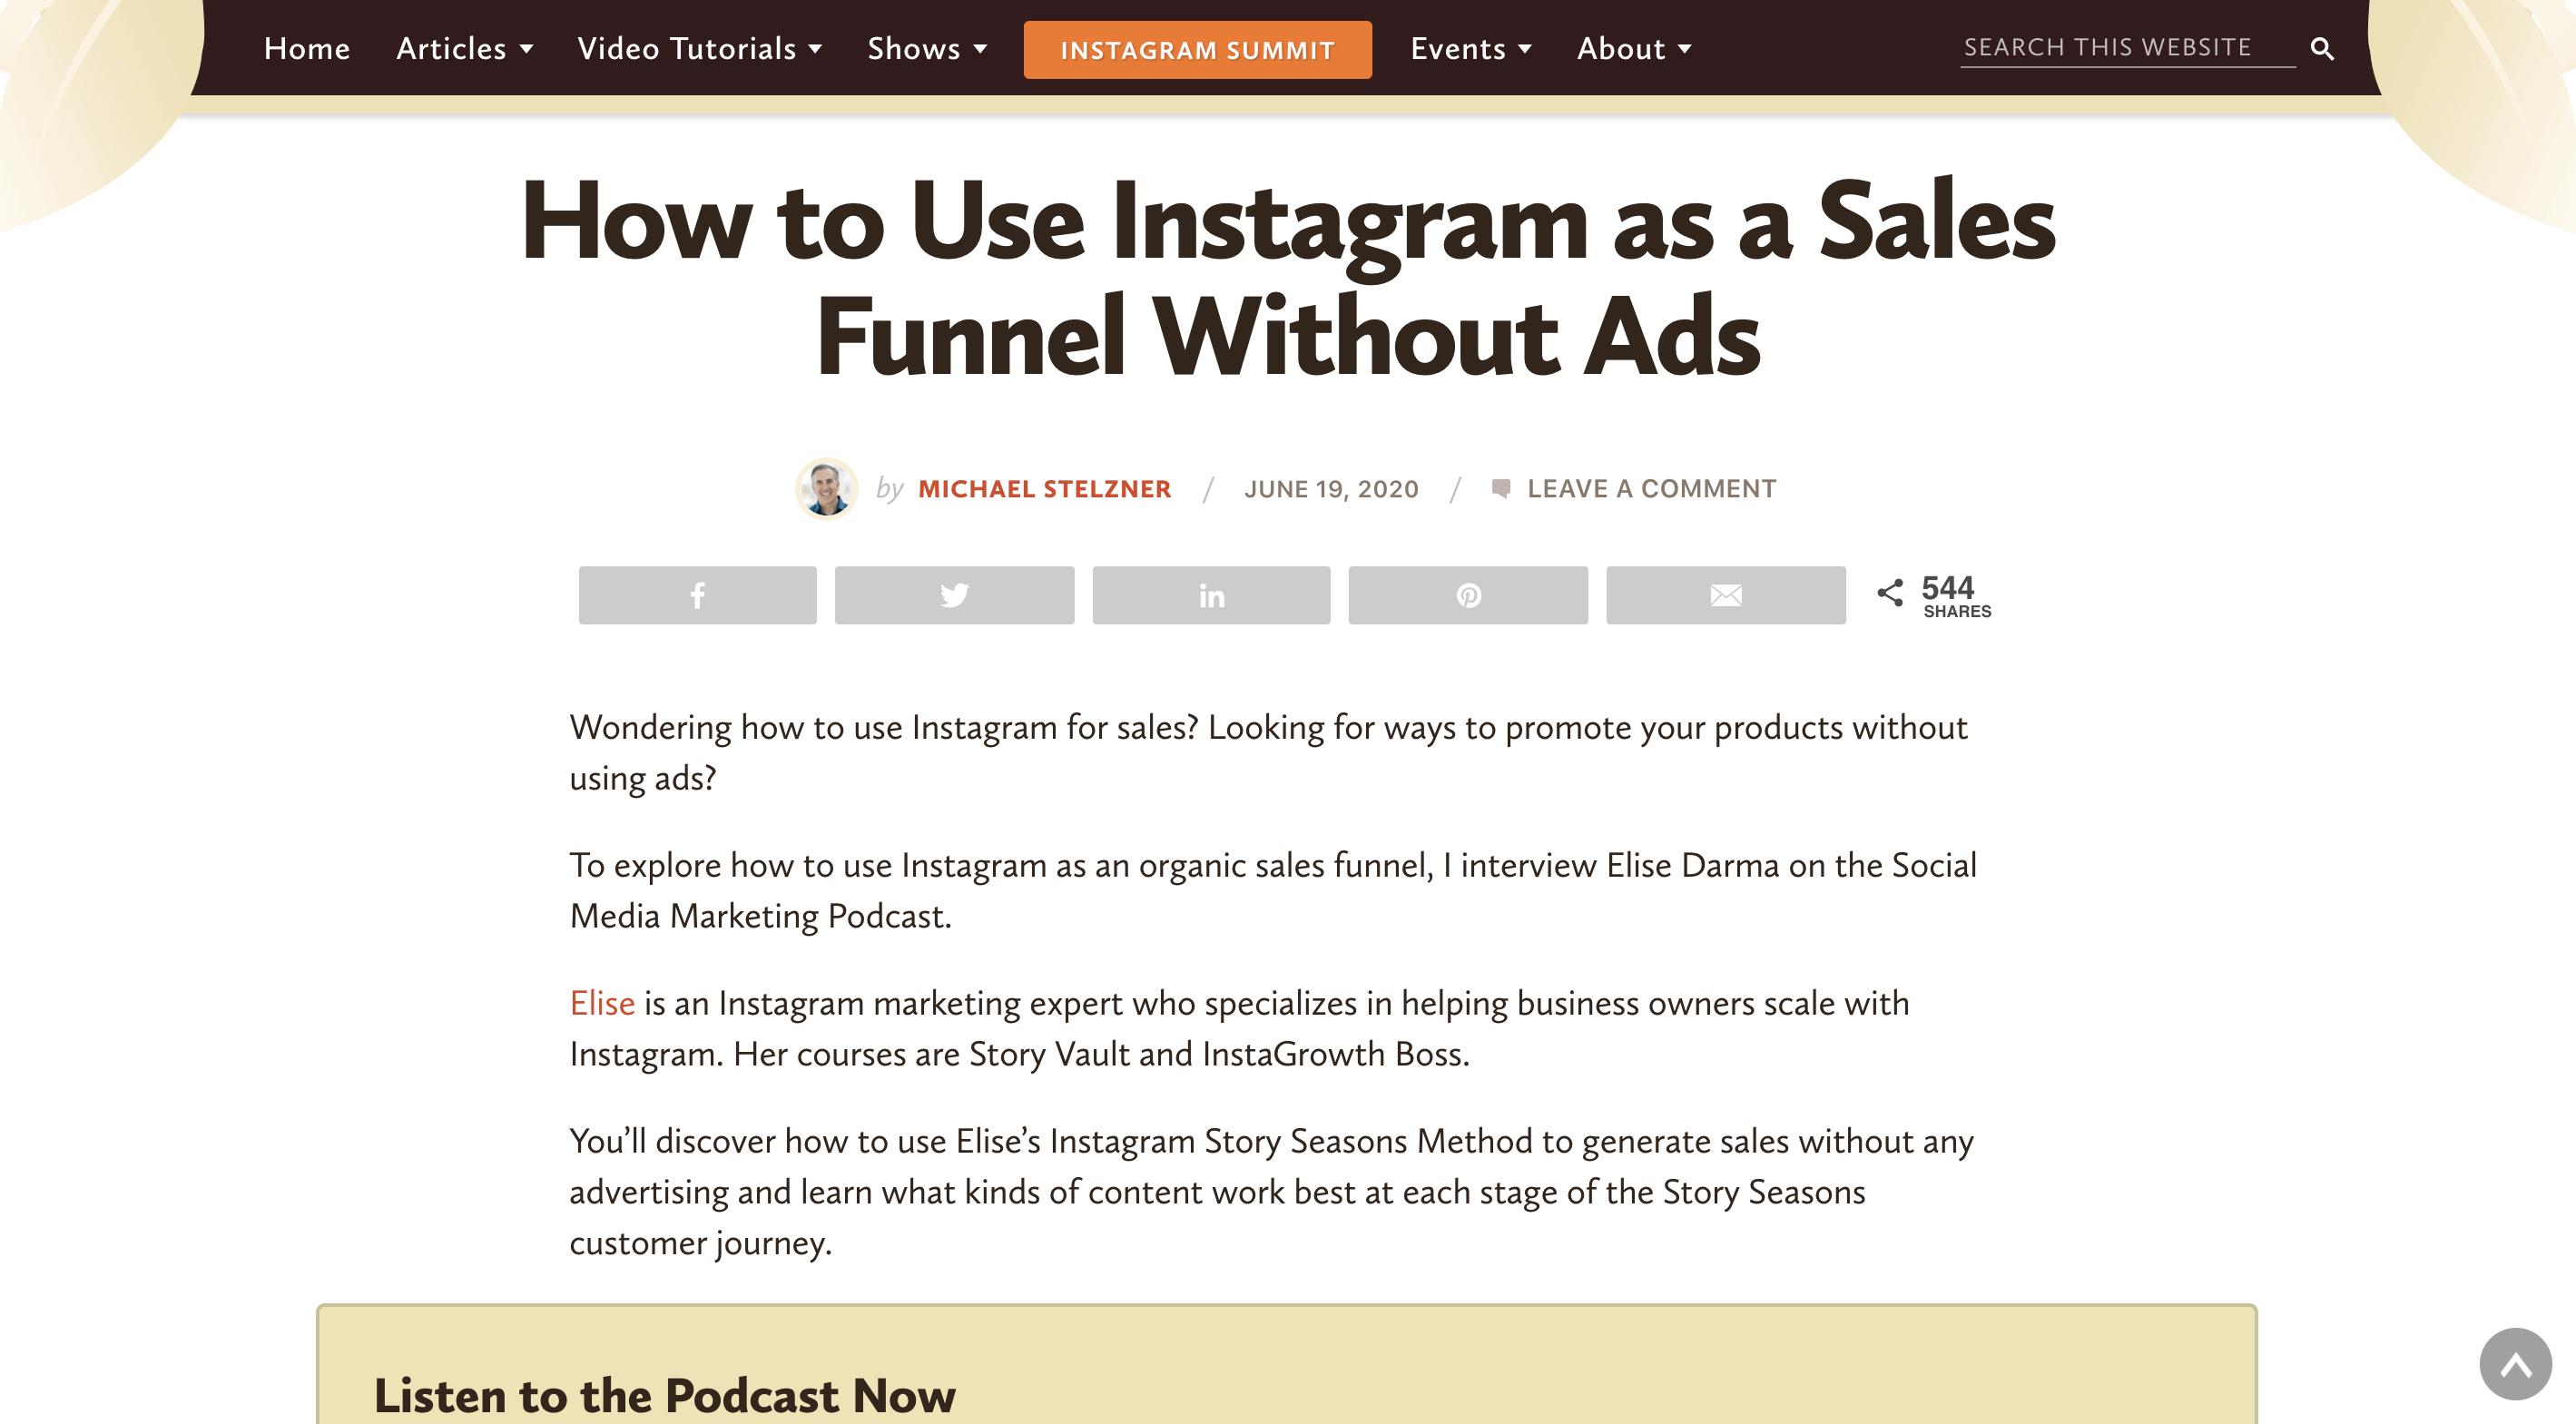 Social Media Examiner - How to Use Instagram as a Sales Funnel Without Ads - Elise Darma